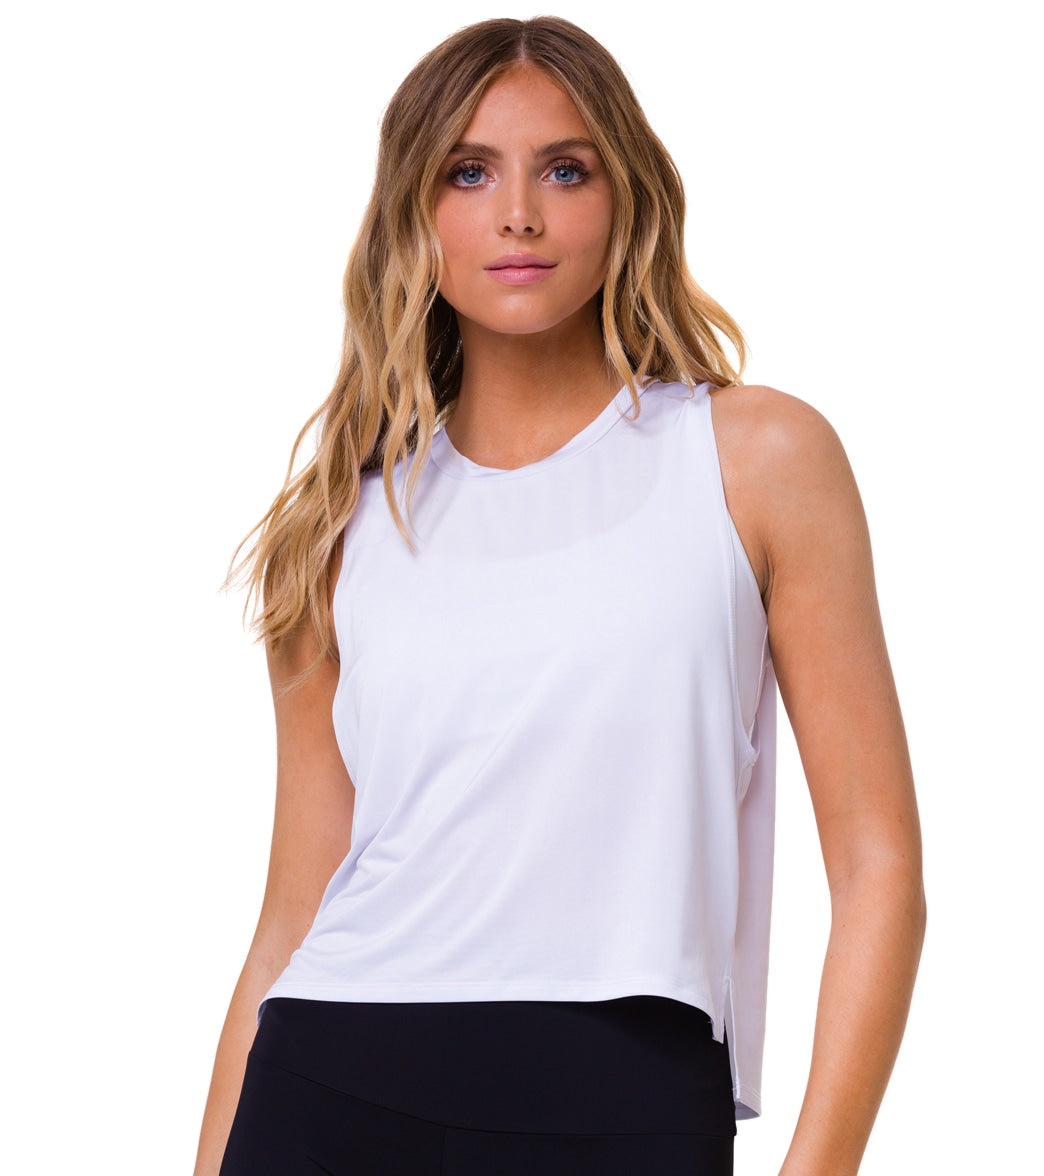 Work out your way in the Onzie Tempo Yoga Tank, which offers an easy cropped, muscle-tee silhouette plus quick-drying, moisture-wicking properties to keep you cool. FeaturesYoga crop top Super soft and comfortable fabric Round neckline Thick straps Side slits Slightly longer hem Moisture wicking Quick dryingDetailsFabric: 92% Polyester, 8% SpandexColor: Black, RedStyle Features: SolidFit: RelaxedShelf Bra: NoSupport: NoneAdjustable: NoLength: CropClosure: Pull onCountry of Origin: Made in the US